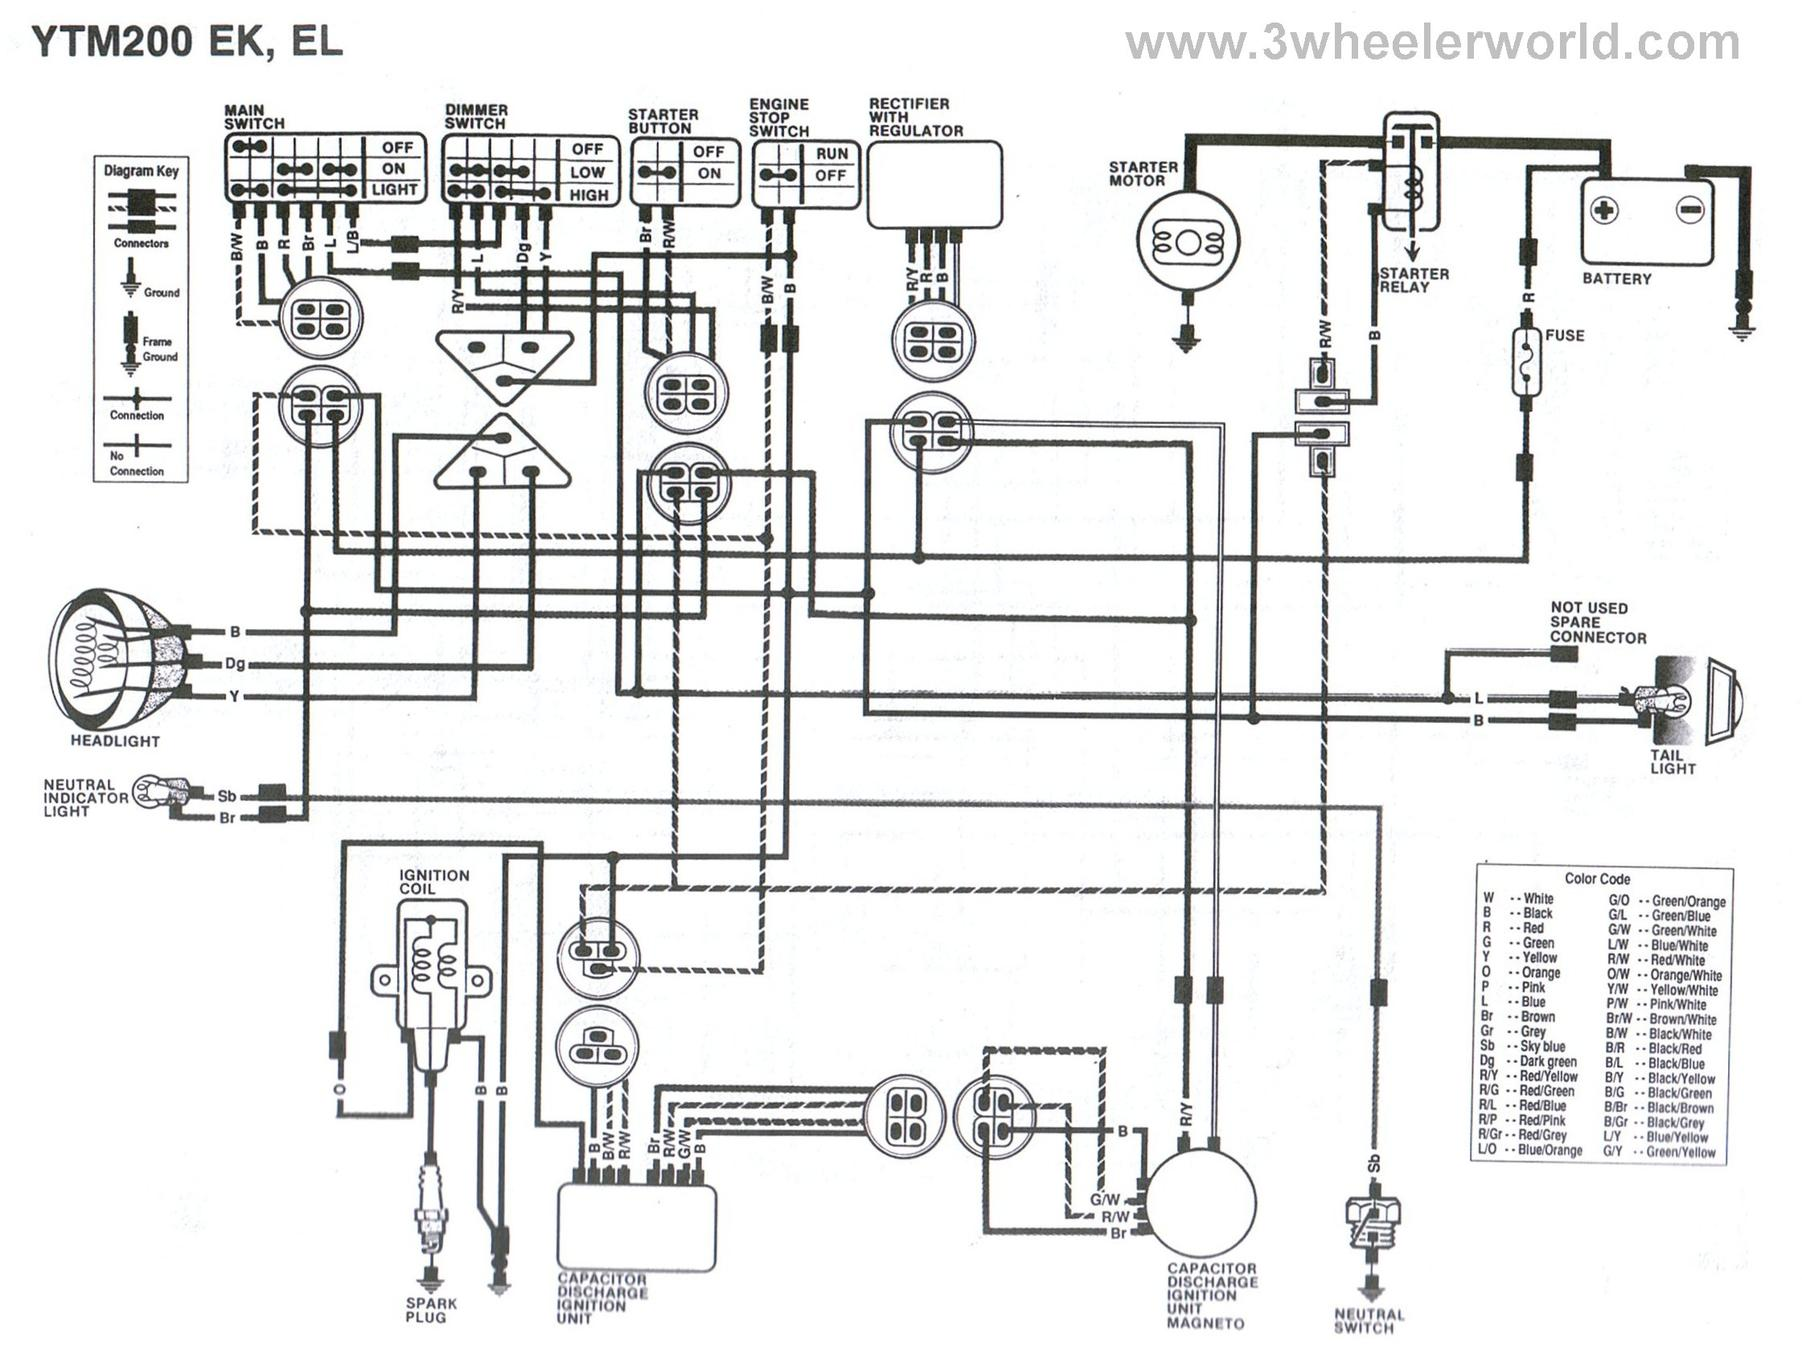 82 virago wiring diagram wiring diagram simple motorcycle wiring diagram for choppers and cafe racers